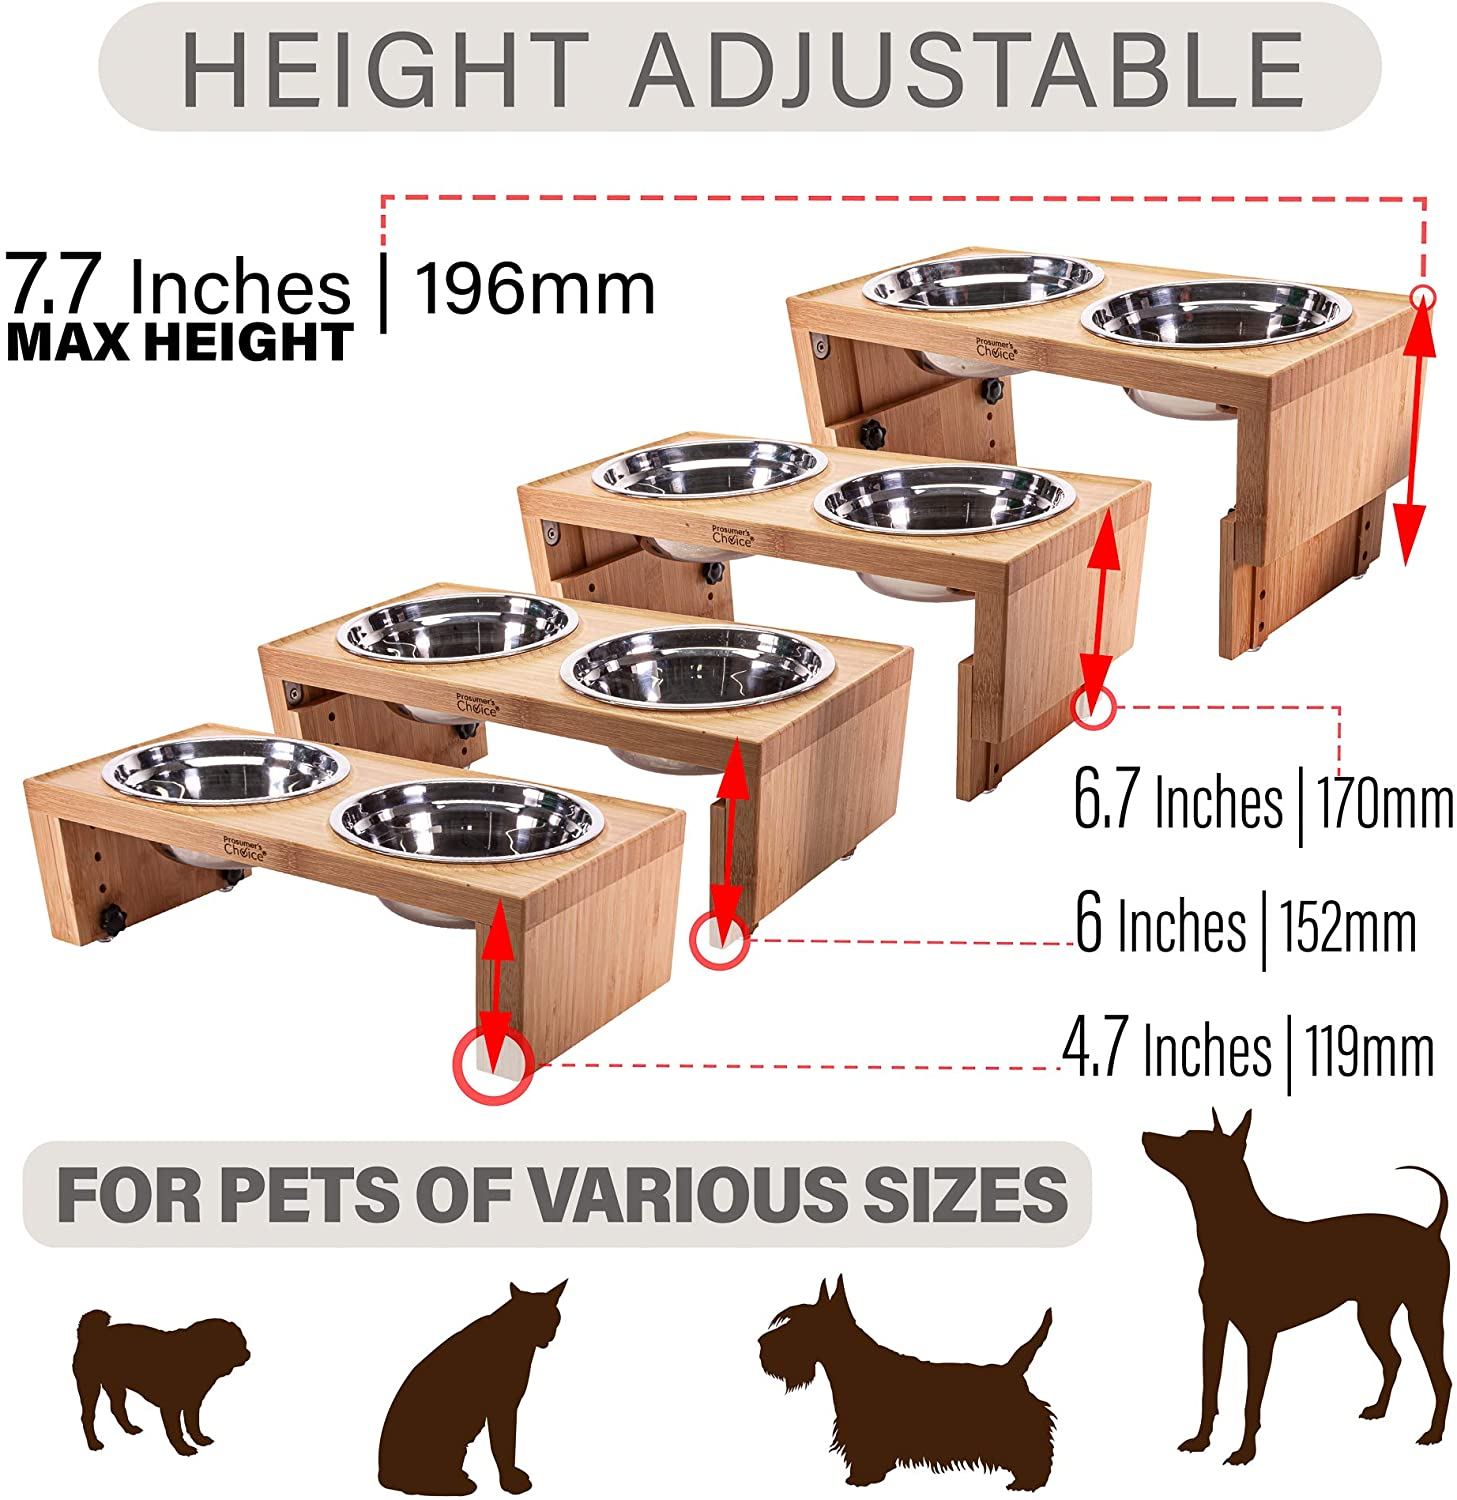 Pet Supplies : Prosumer's Choice Bamboo Adjustable Height Dog Bowls and  Stand - 4.7 to 7.7 Inches Tall : Amazon.com